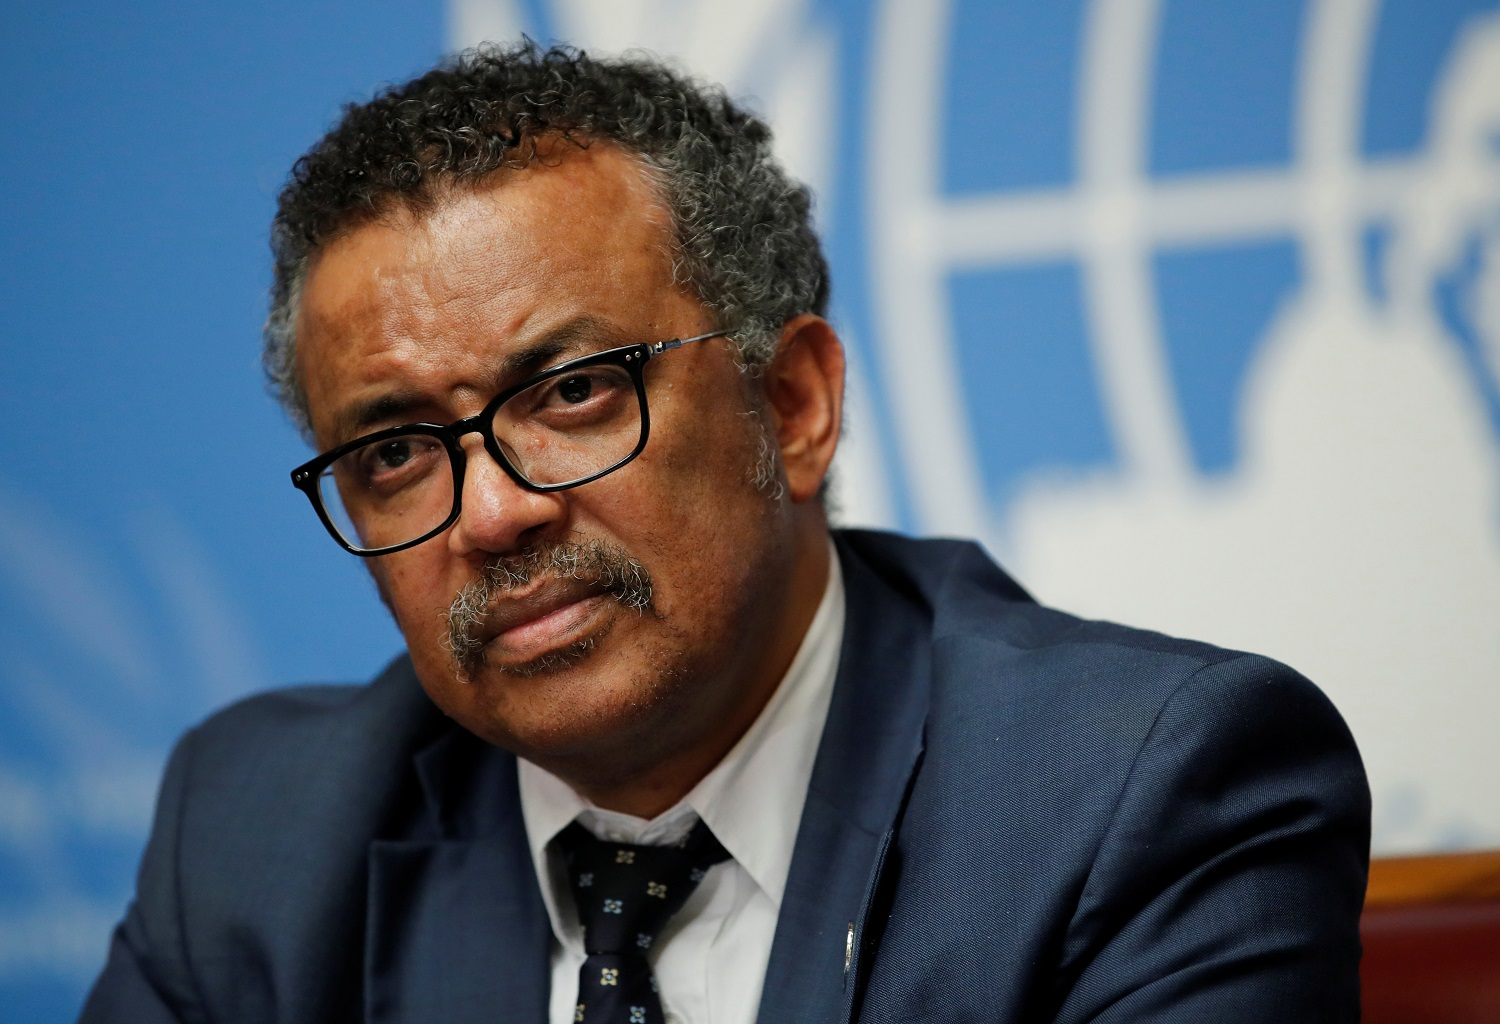 Director-General of the World Health Organization (WHO) Tedros Adhanom Ghebreyesus attends a news conference after an Emergency Committee meeting on the Ebola outbreak in the Democratic Republic of Congo, and two days before the start of the WHO's annual World Health Assembly at the United Nations in Geneva, Switzerland, May 18, 2018.  REUTERS/Denis Balibouse - RC1A316D15C0